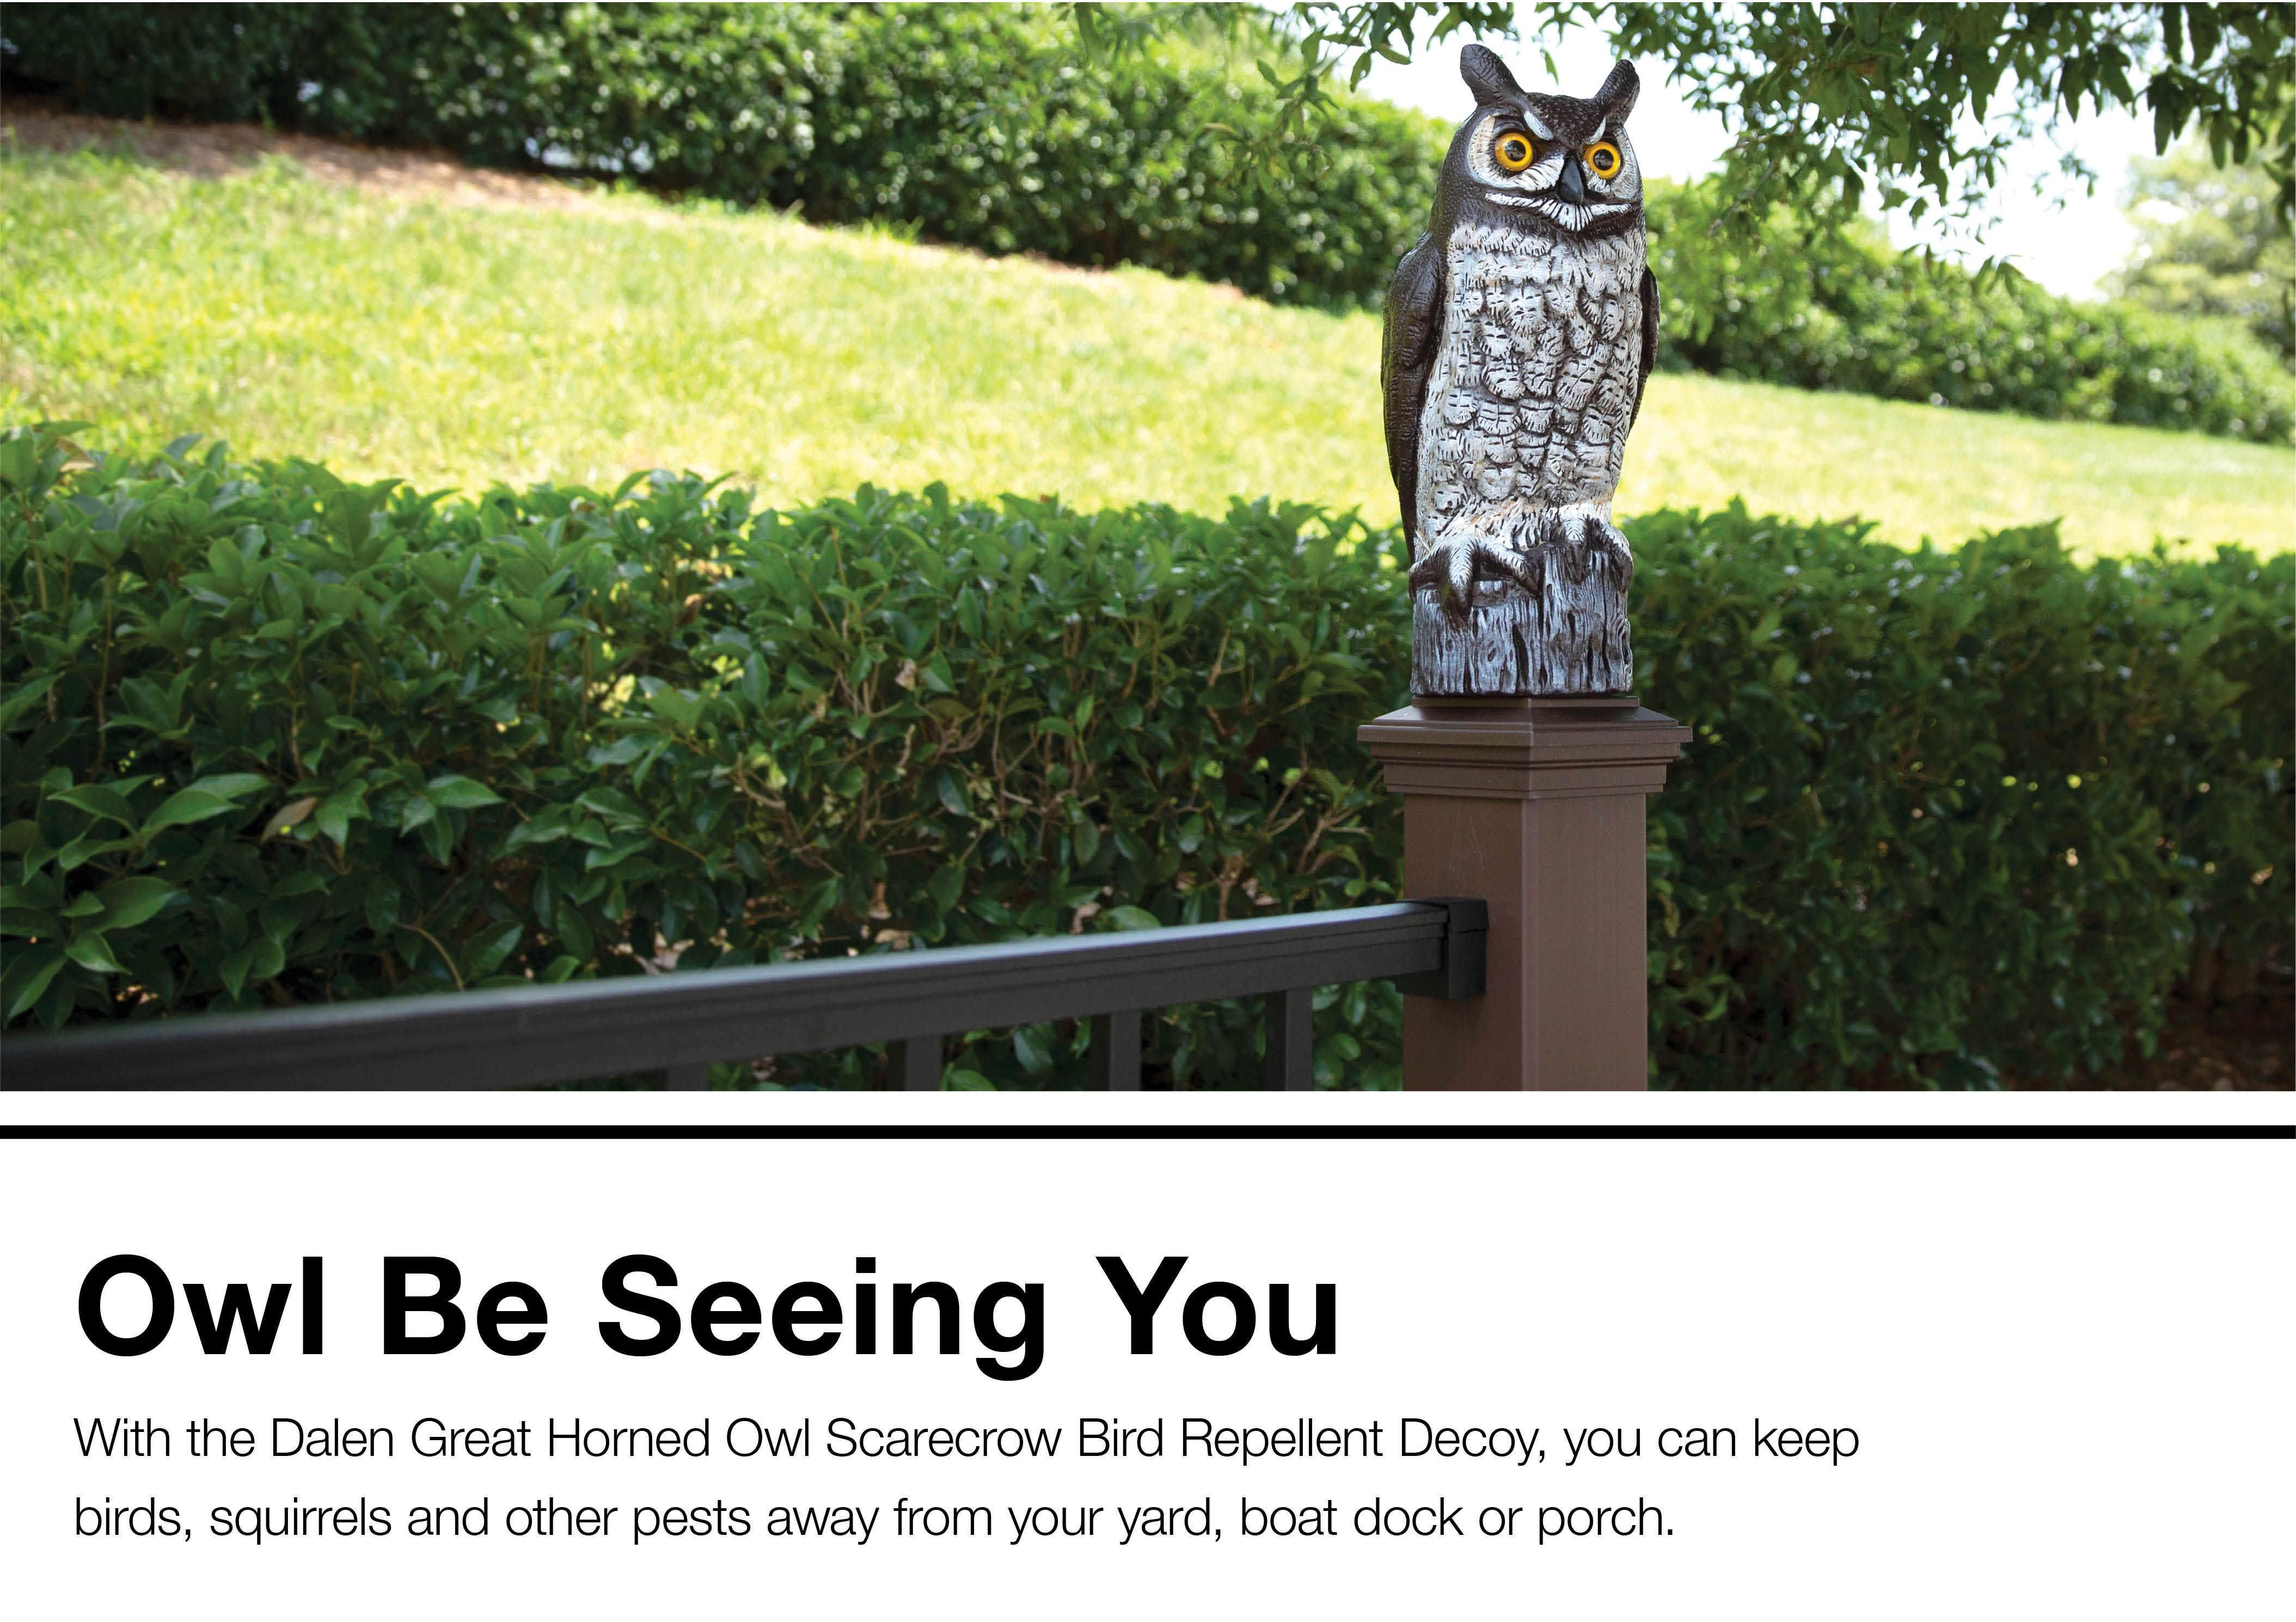 Dalen Great Horned Owl Scarecrow Bird Repellent Decoy at